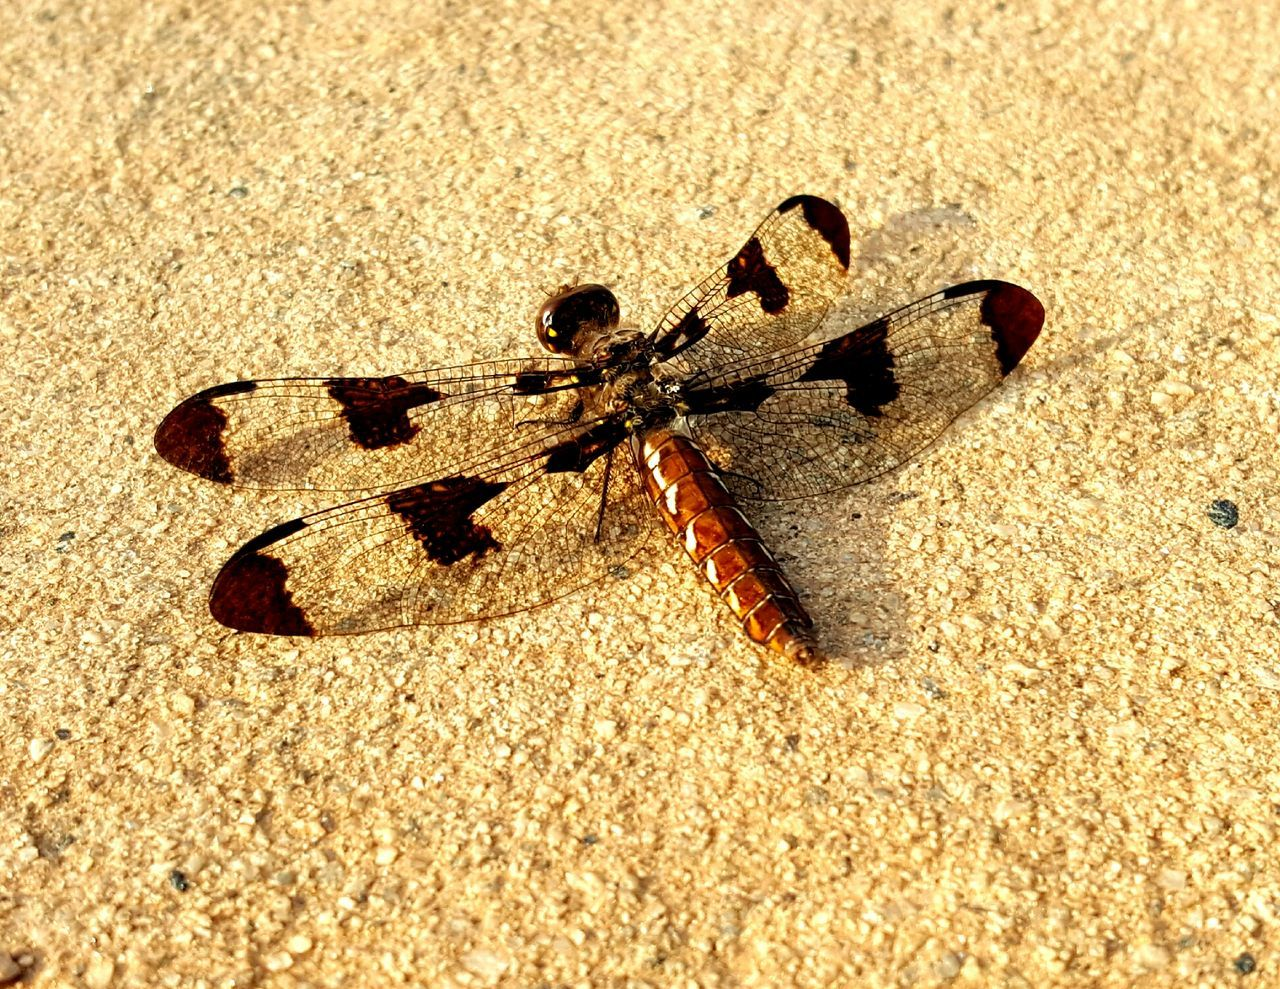 sand, sunlight, animal themes, one animal, insect, day, animals in the wild, outdoors, no people, beach, nature, close-up